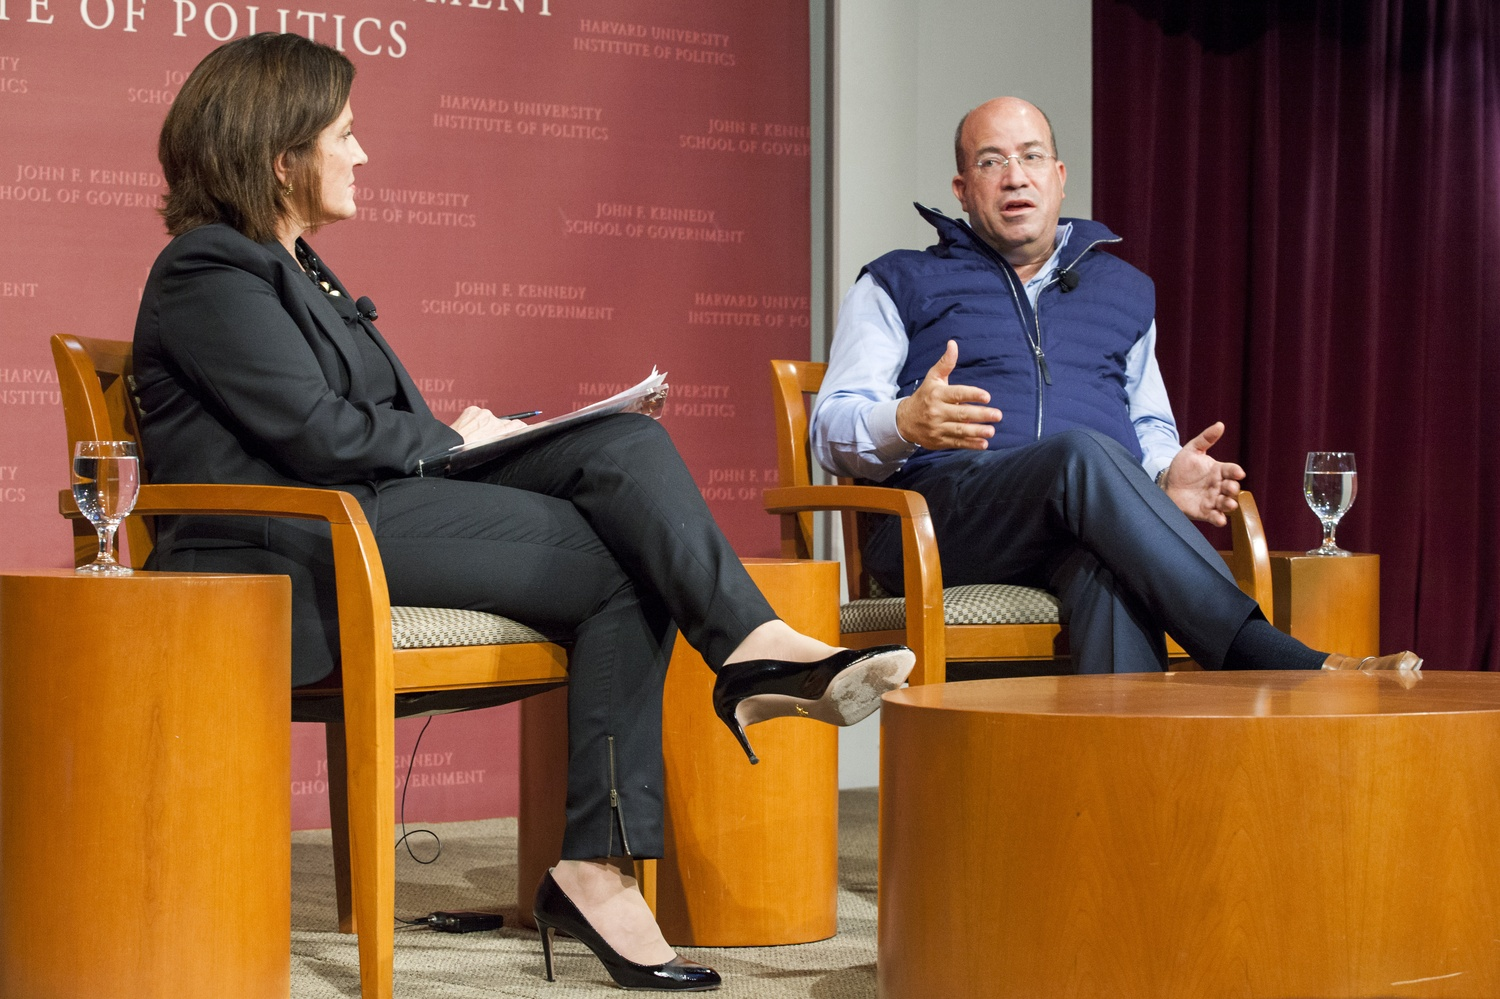 CNN President Jeff Zucker '86 talks with the Washington Post's Lois Romano at the JFK Jr. Forum on Friday afternoon. Zucker and Romano discussed CNN's coverage of Donald Trump's campaign and Zucker's role in recruiting Trump for the television show The Apprentice.